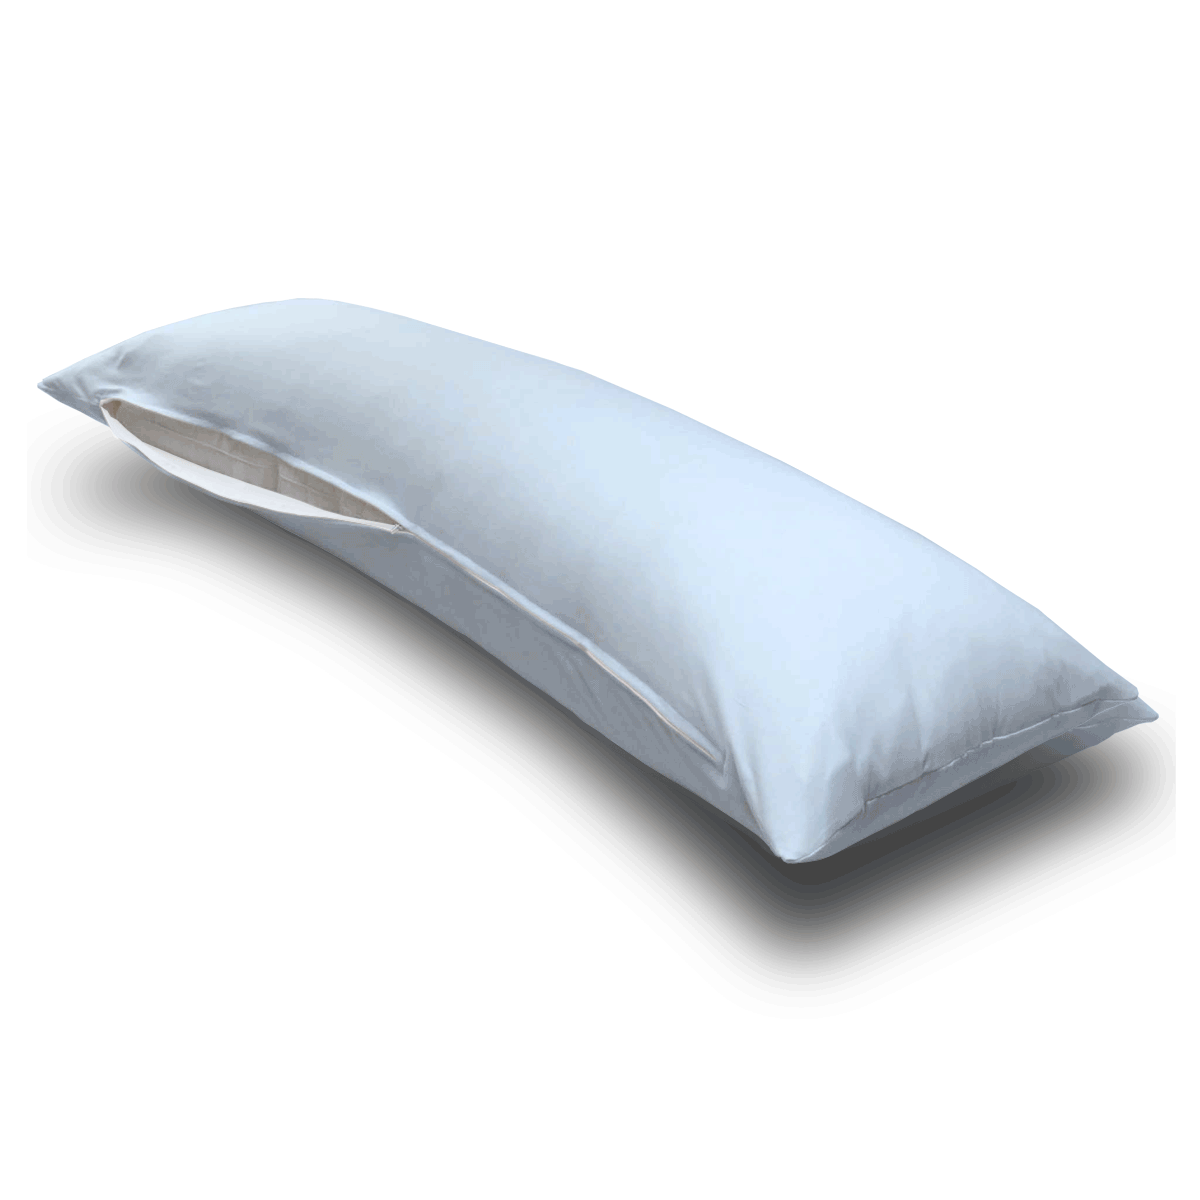 Cotton Body Pillow Cases Jersey Knit Pillow Cases